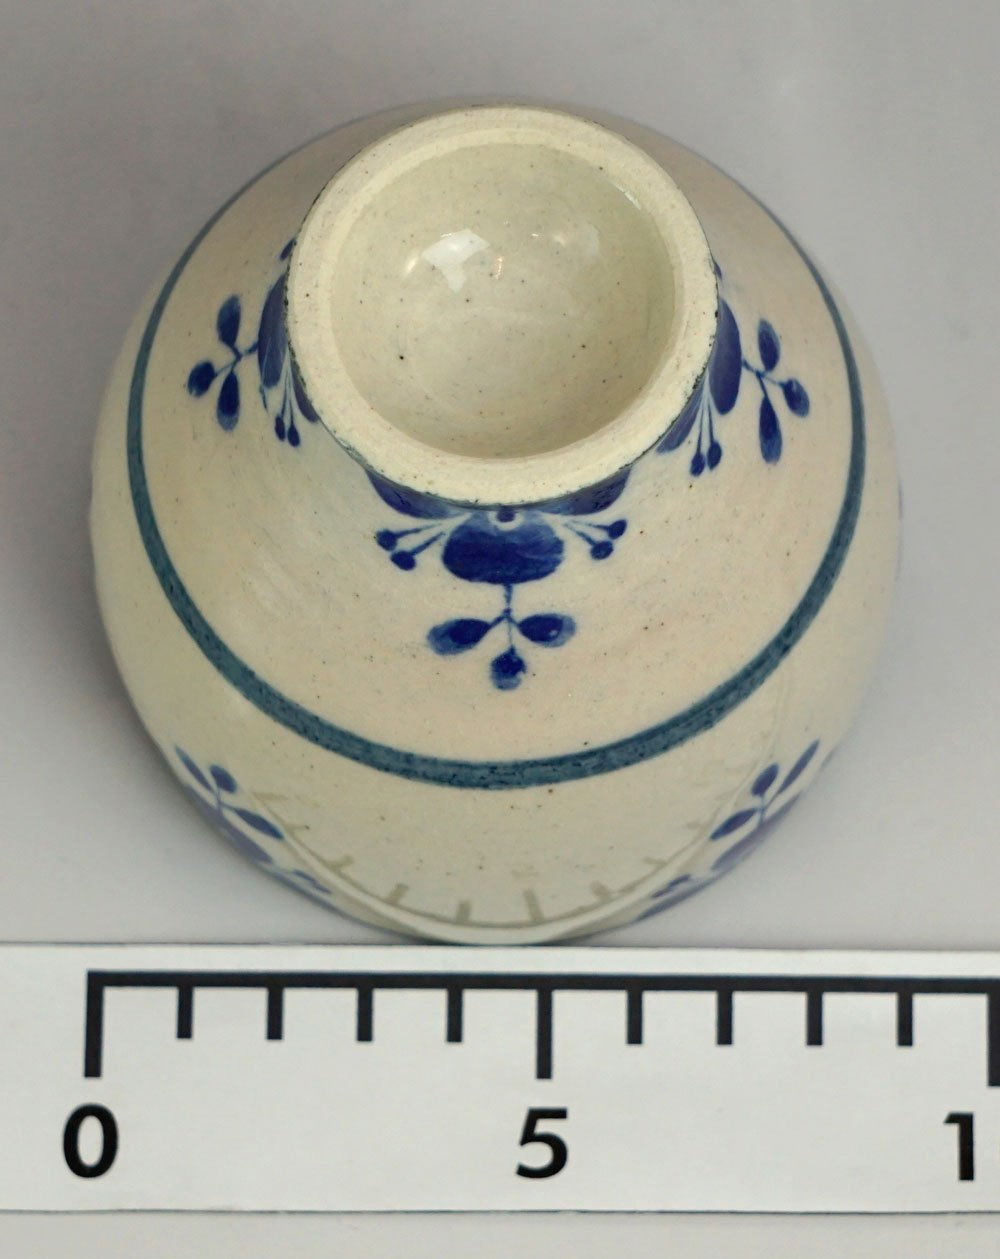 Mino ware Japanese Pottery Yunomi Chawan Tea/Wine Cup Rosemary Navy Blue made in Japan by T-Family (Image #3)